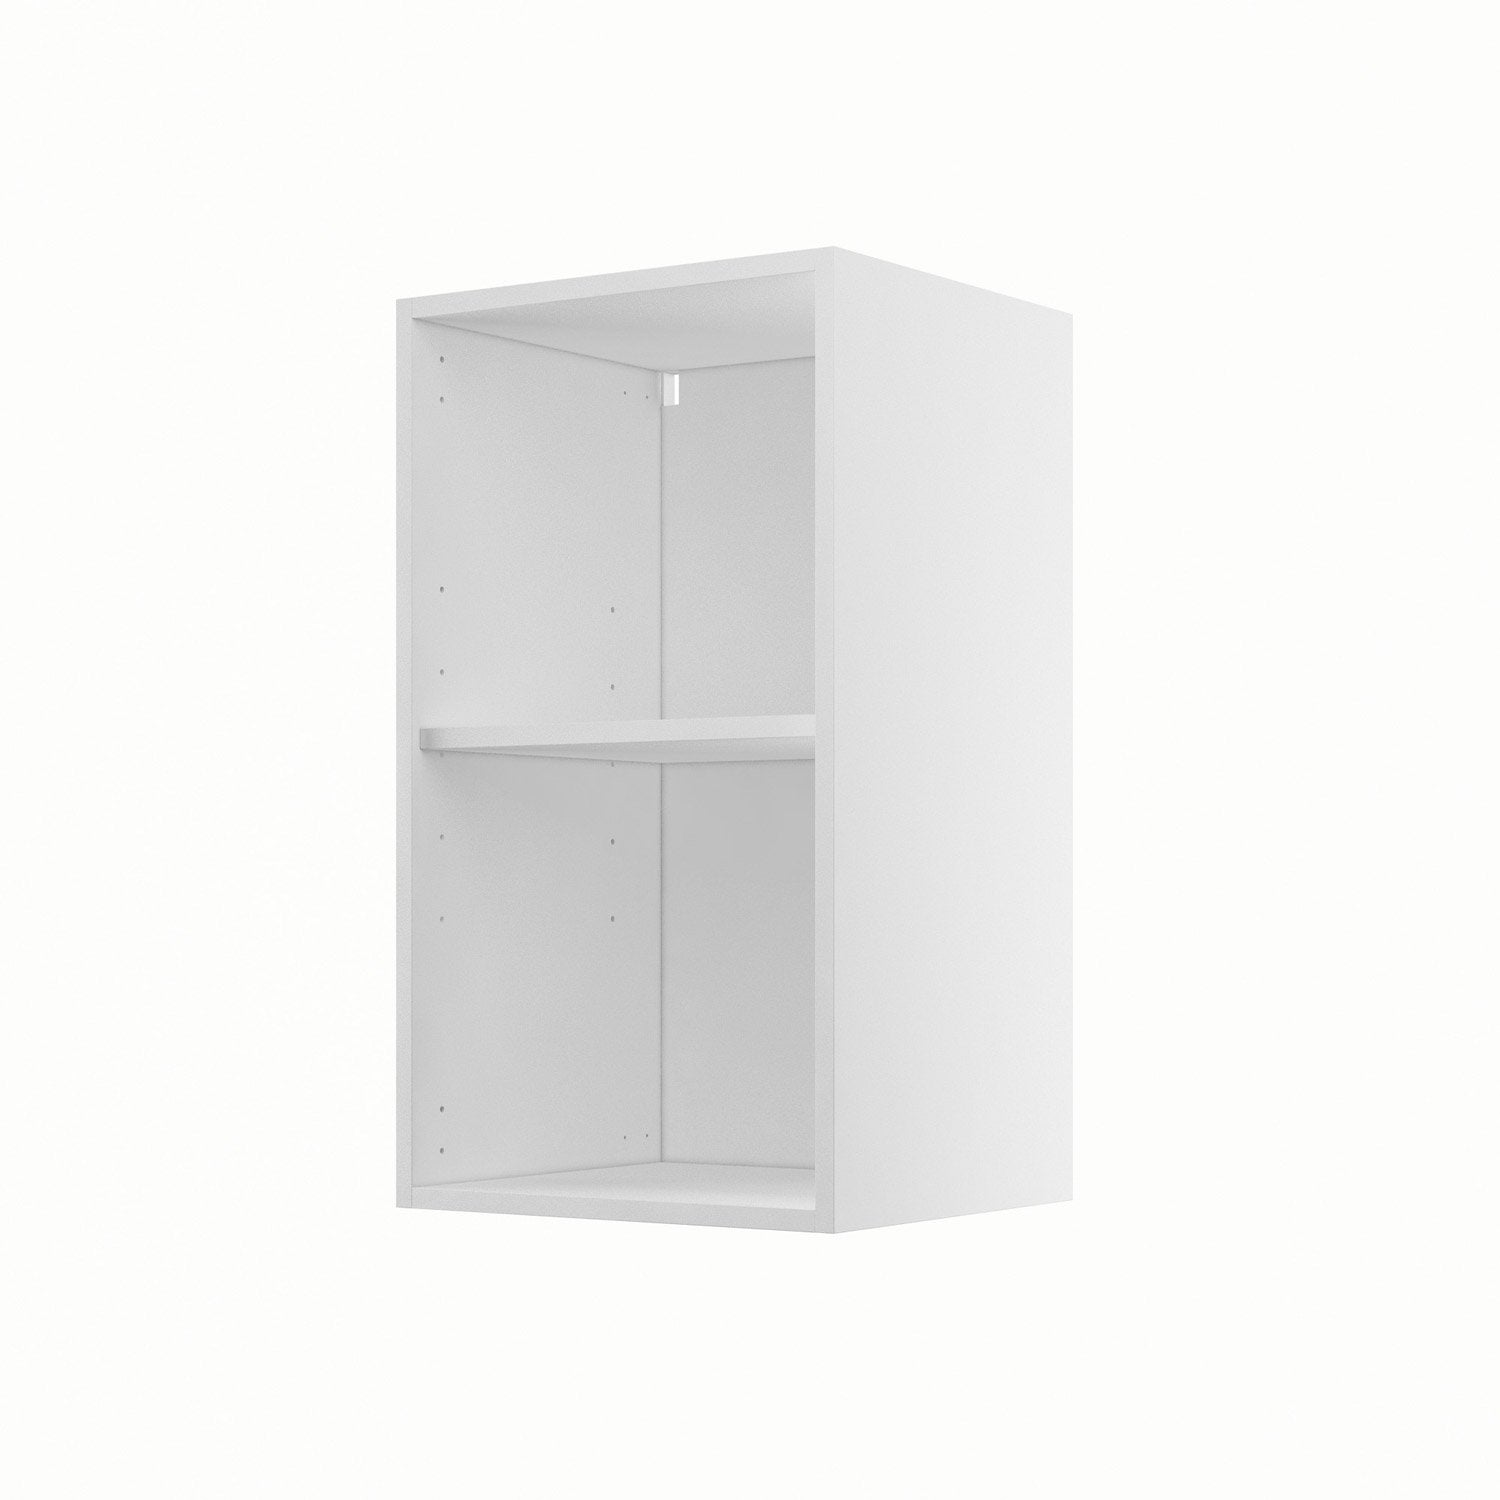 caisson de cuisine haut h40 70 delinia blanc x x cm leroy merlin. Black Bedroom Furniture Sets. Home Design Ideas